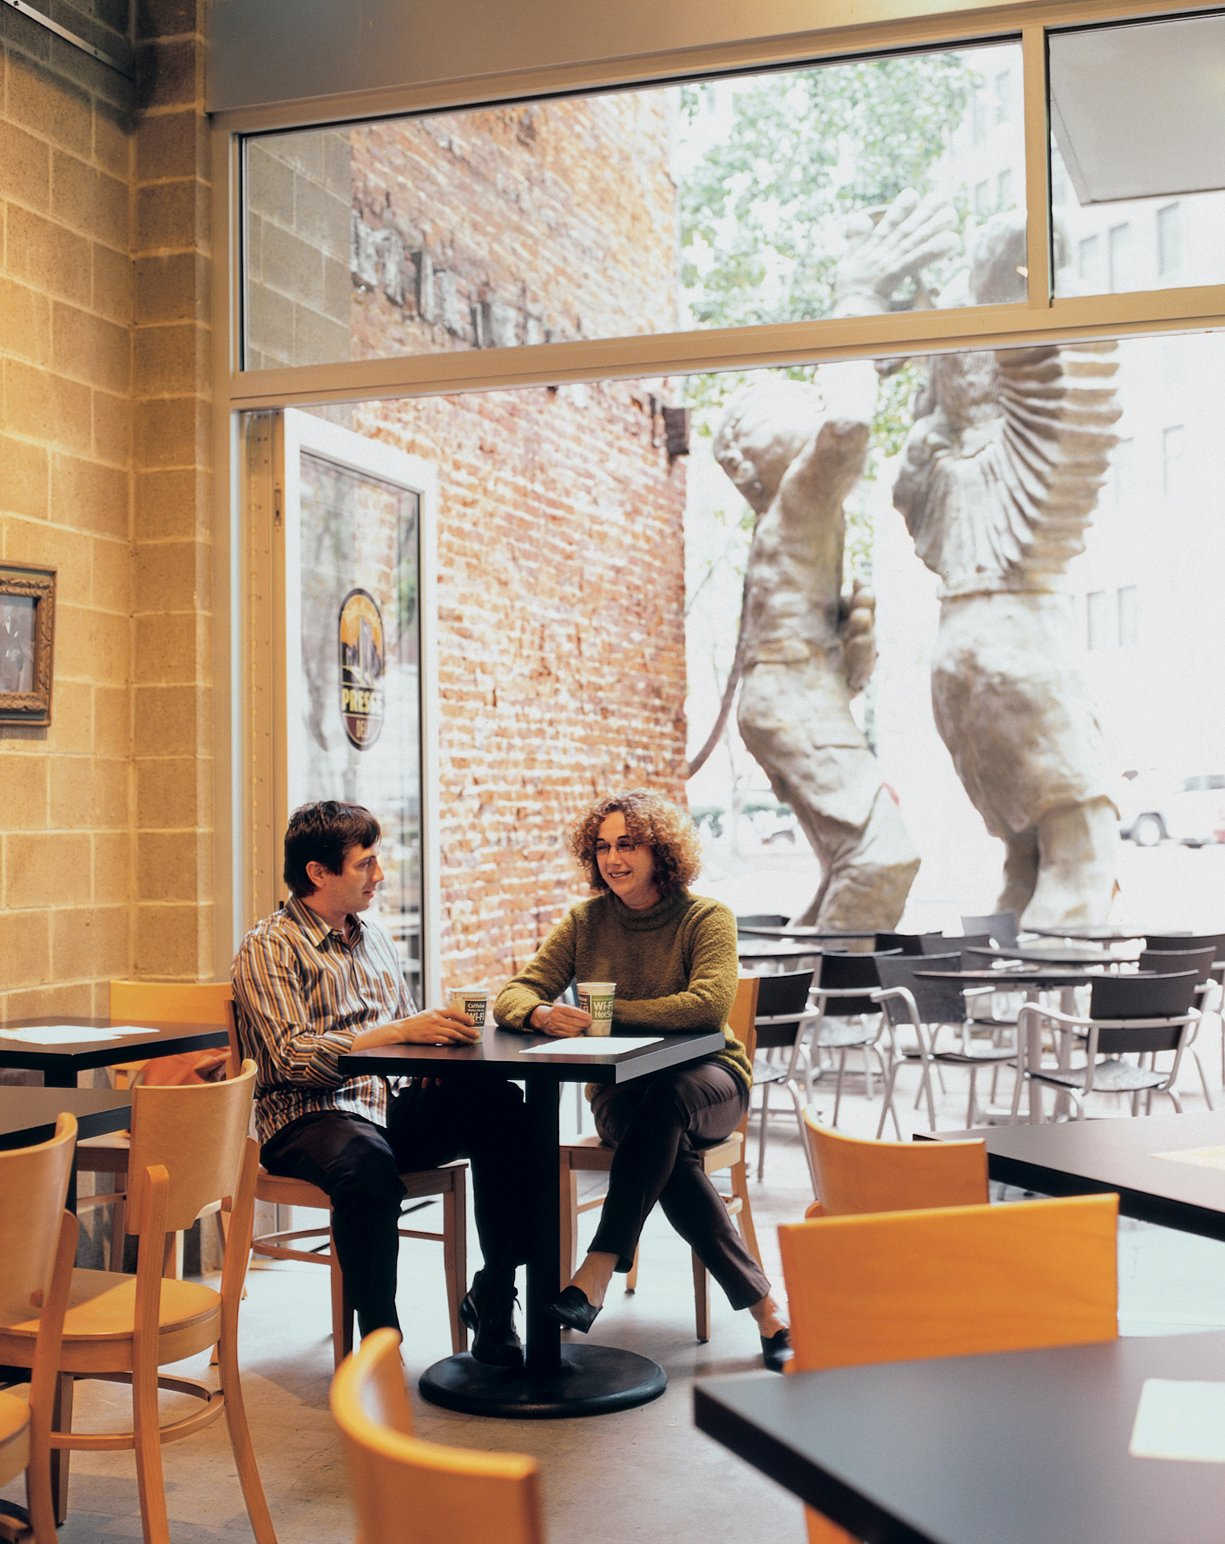 Architect Dutch MacDonald and developer Eve Picker relax at the Pittsburgh Presse Deli in the building's ground-floor storefront. De-signed by MacDonald's Edge Studio, the restaurant serves gourmet panini six days a week.  Photo 6 of 7 in Loft Living in Pittsburgh